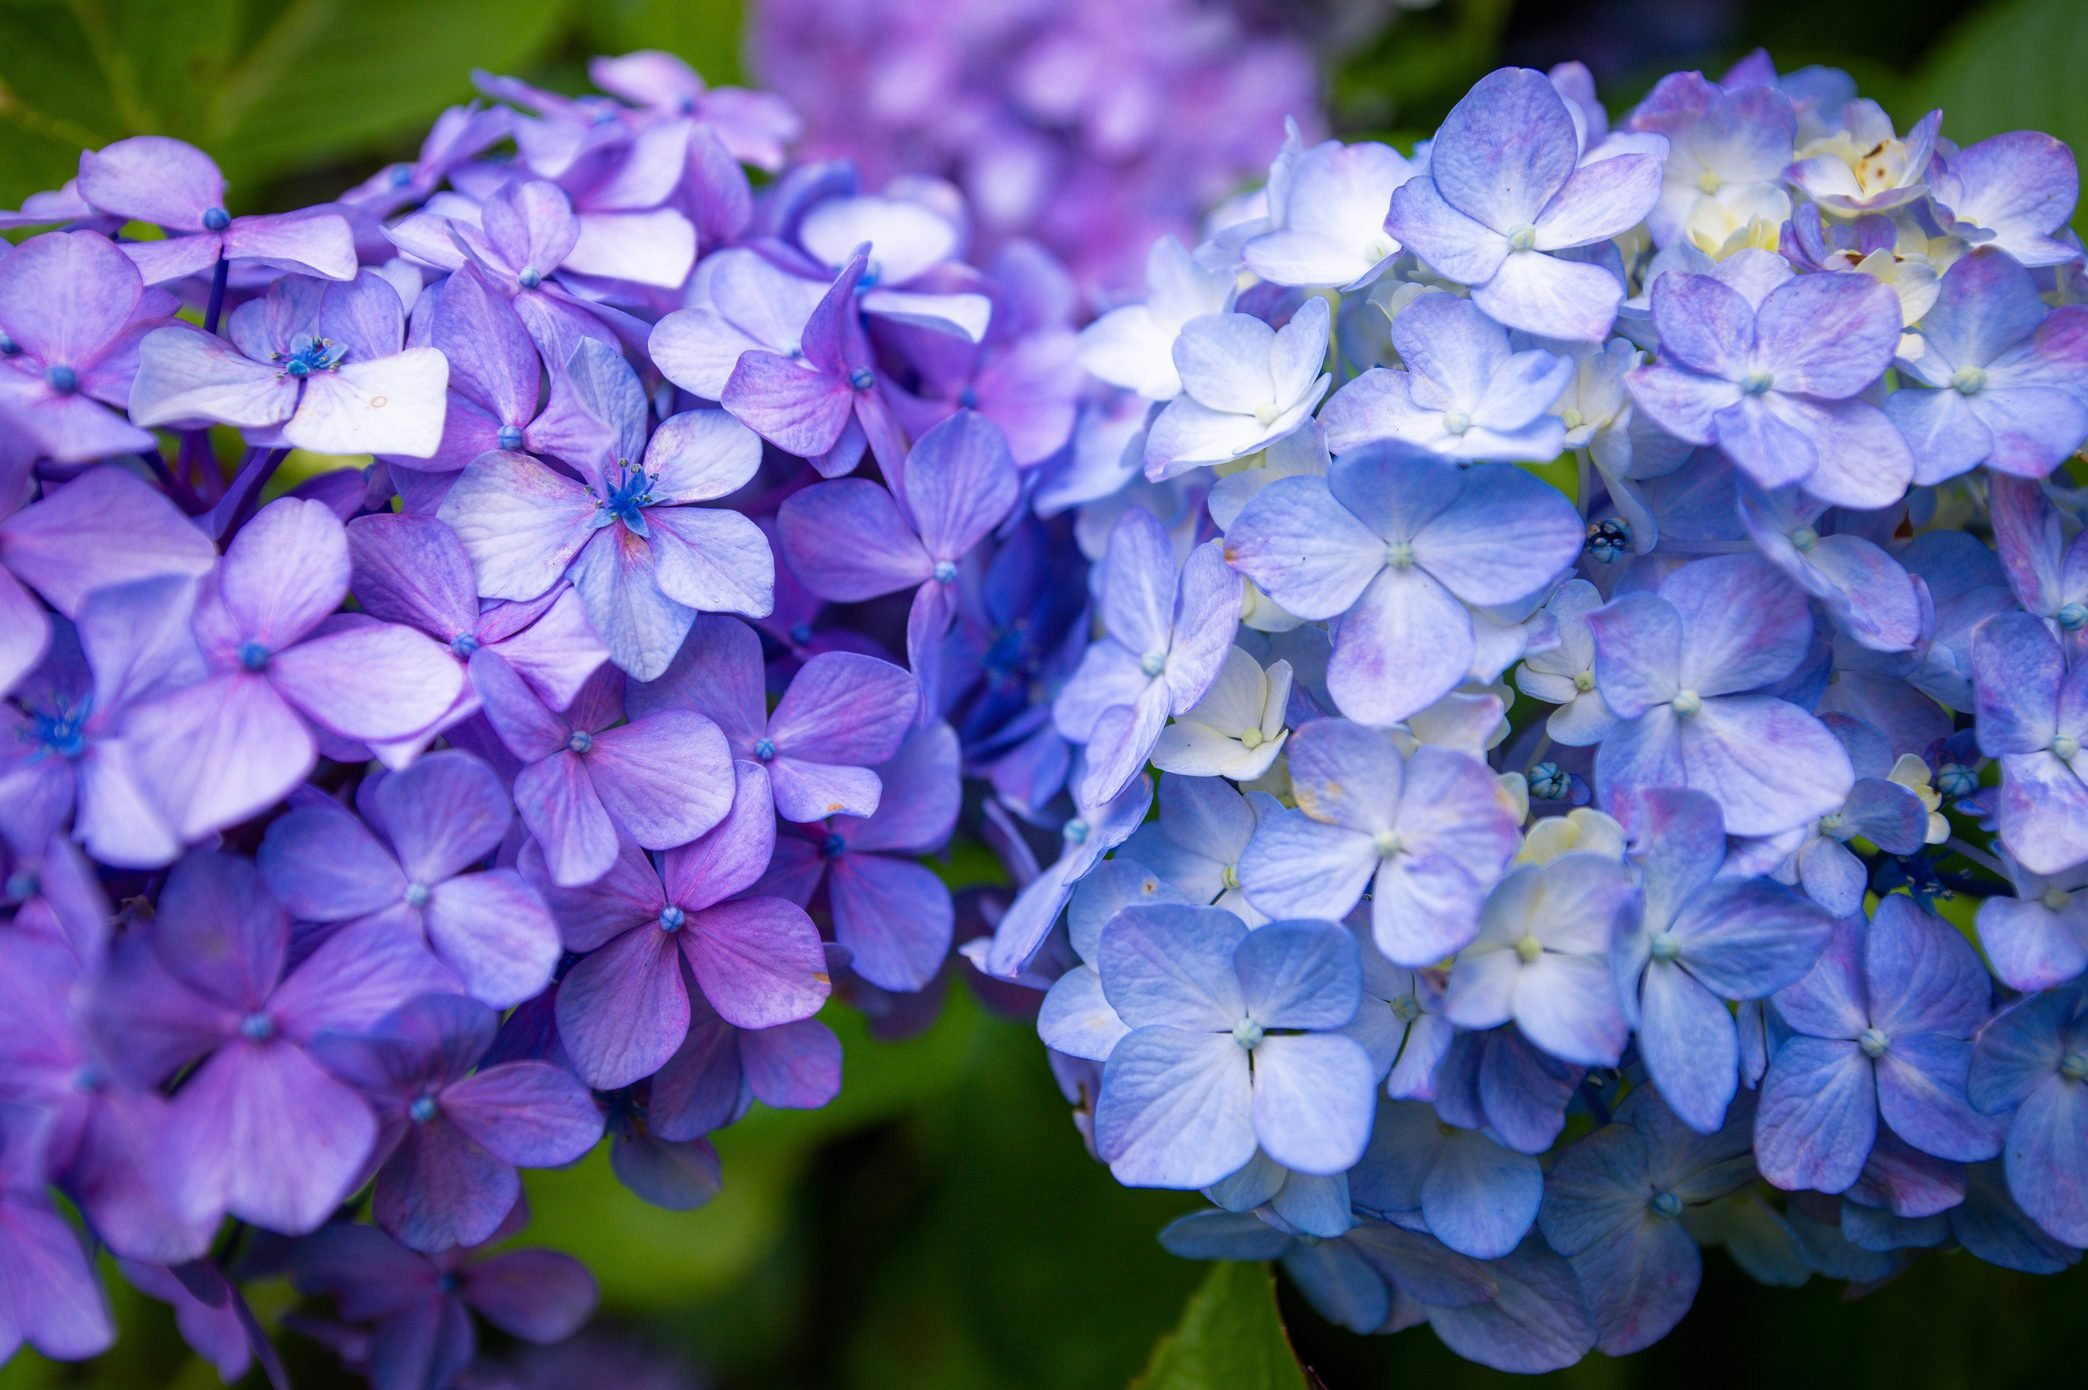 A difference color pair of Hydrangea